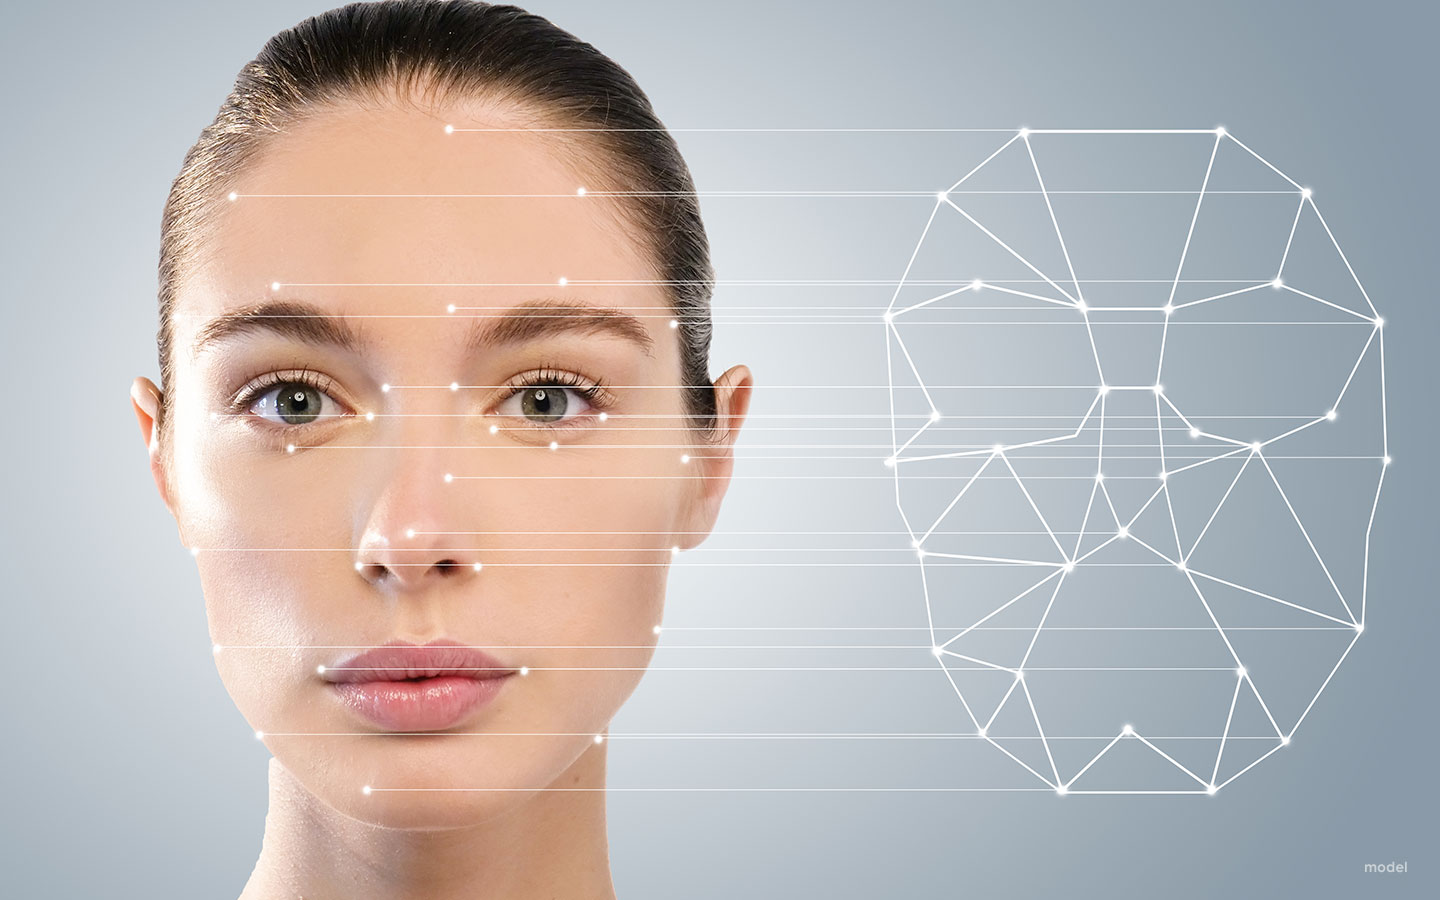 face mapping for customized plate design